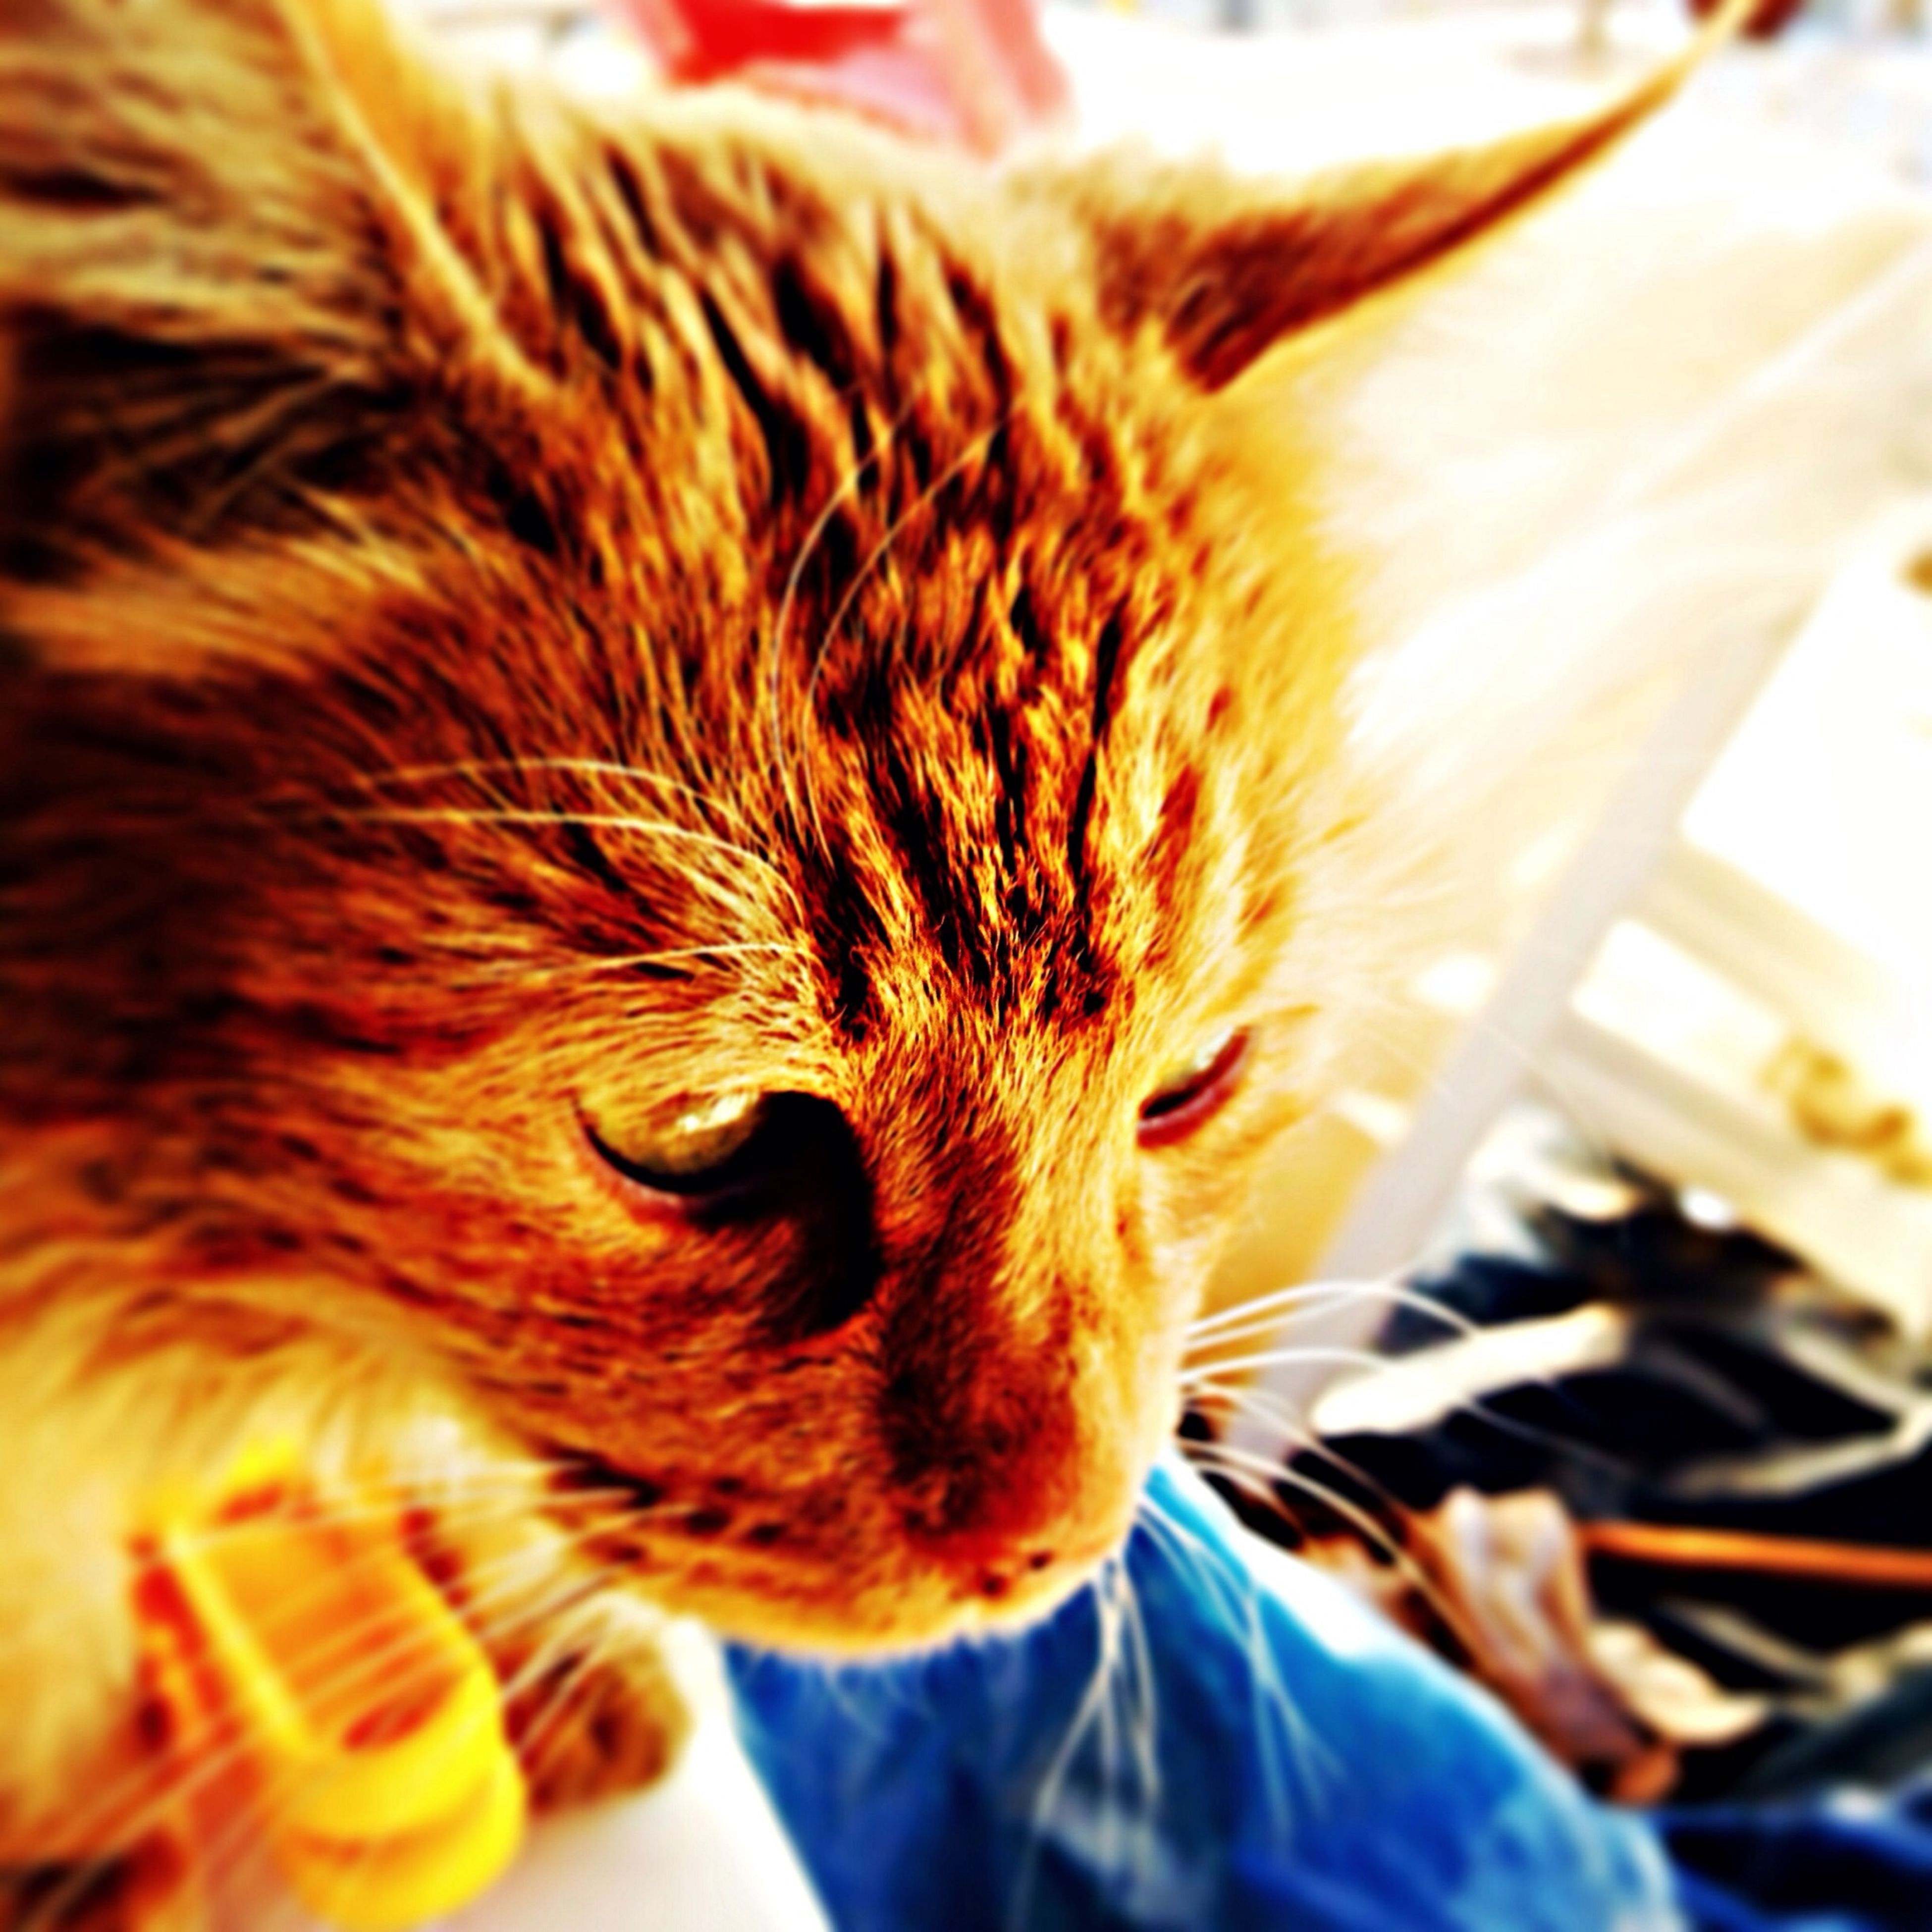 domestic animals, pets, one animal, animal themes, mammal, domestic cat, indoors, cat, feline, whisker, close-up, animal head, relaxation, looking away, focus on foreground, home interior, animal body part, part of, selective focus, home